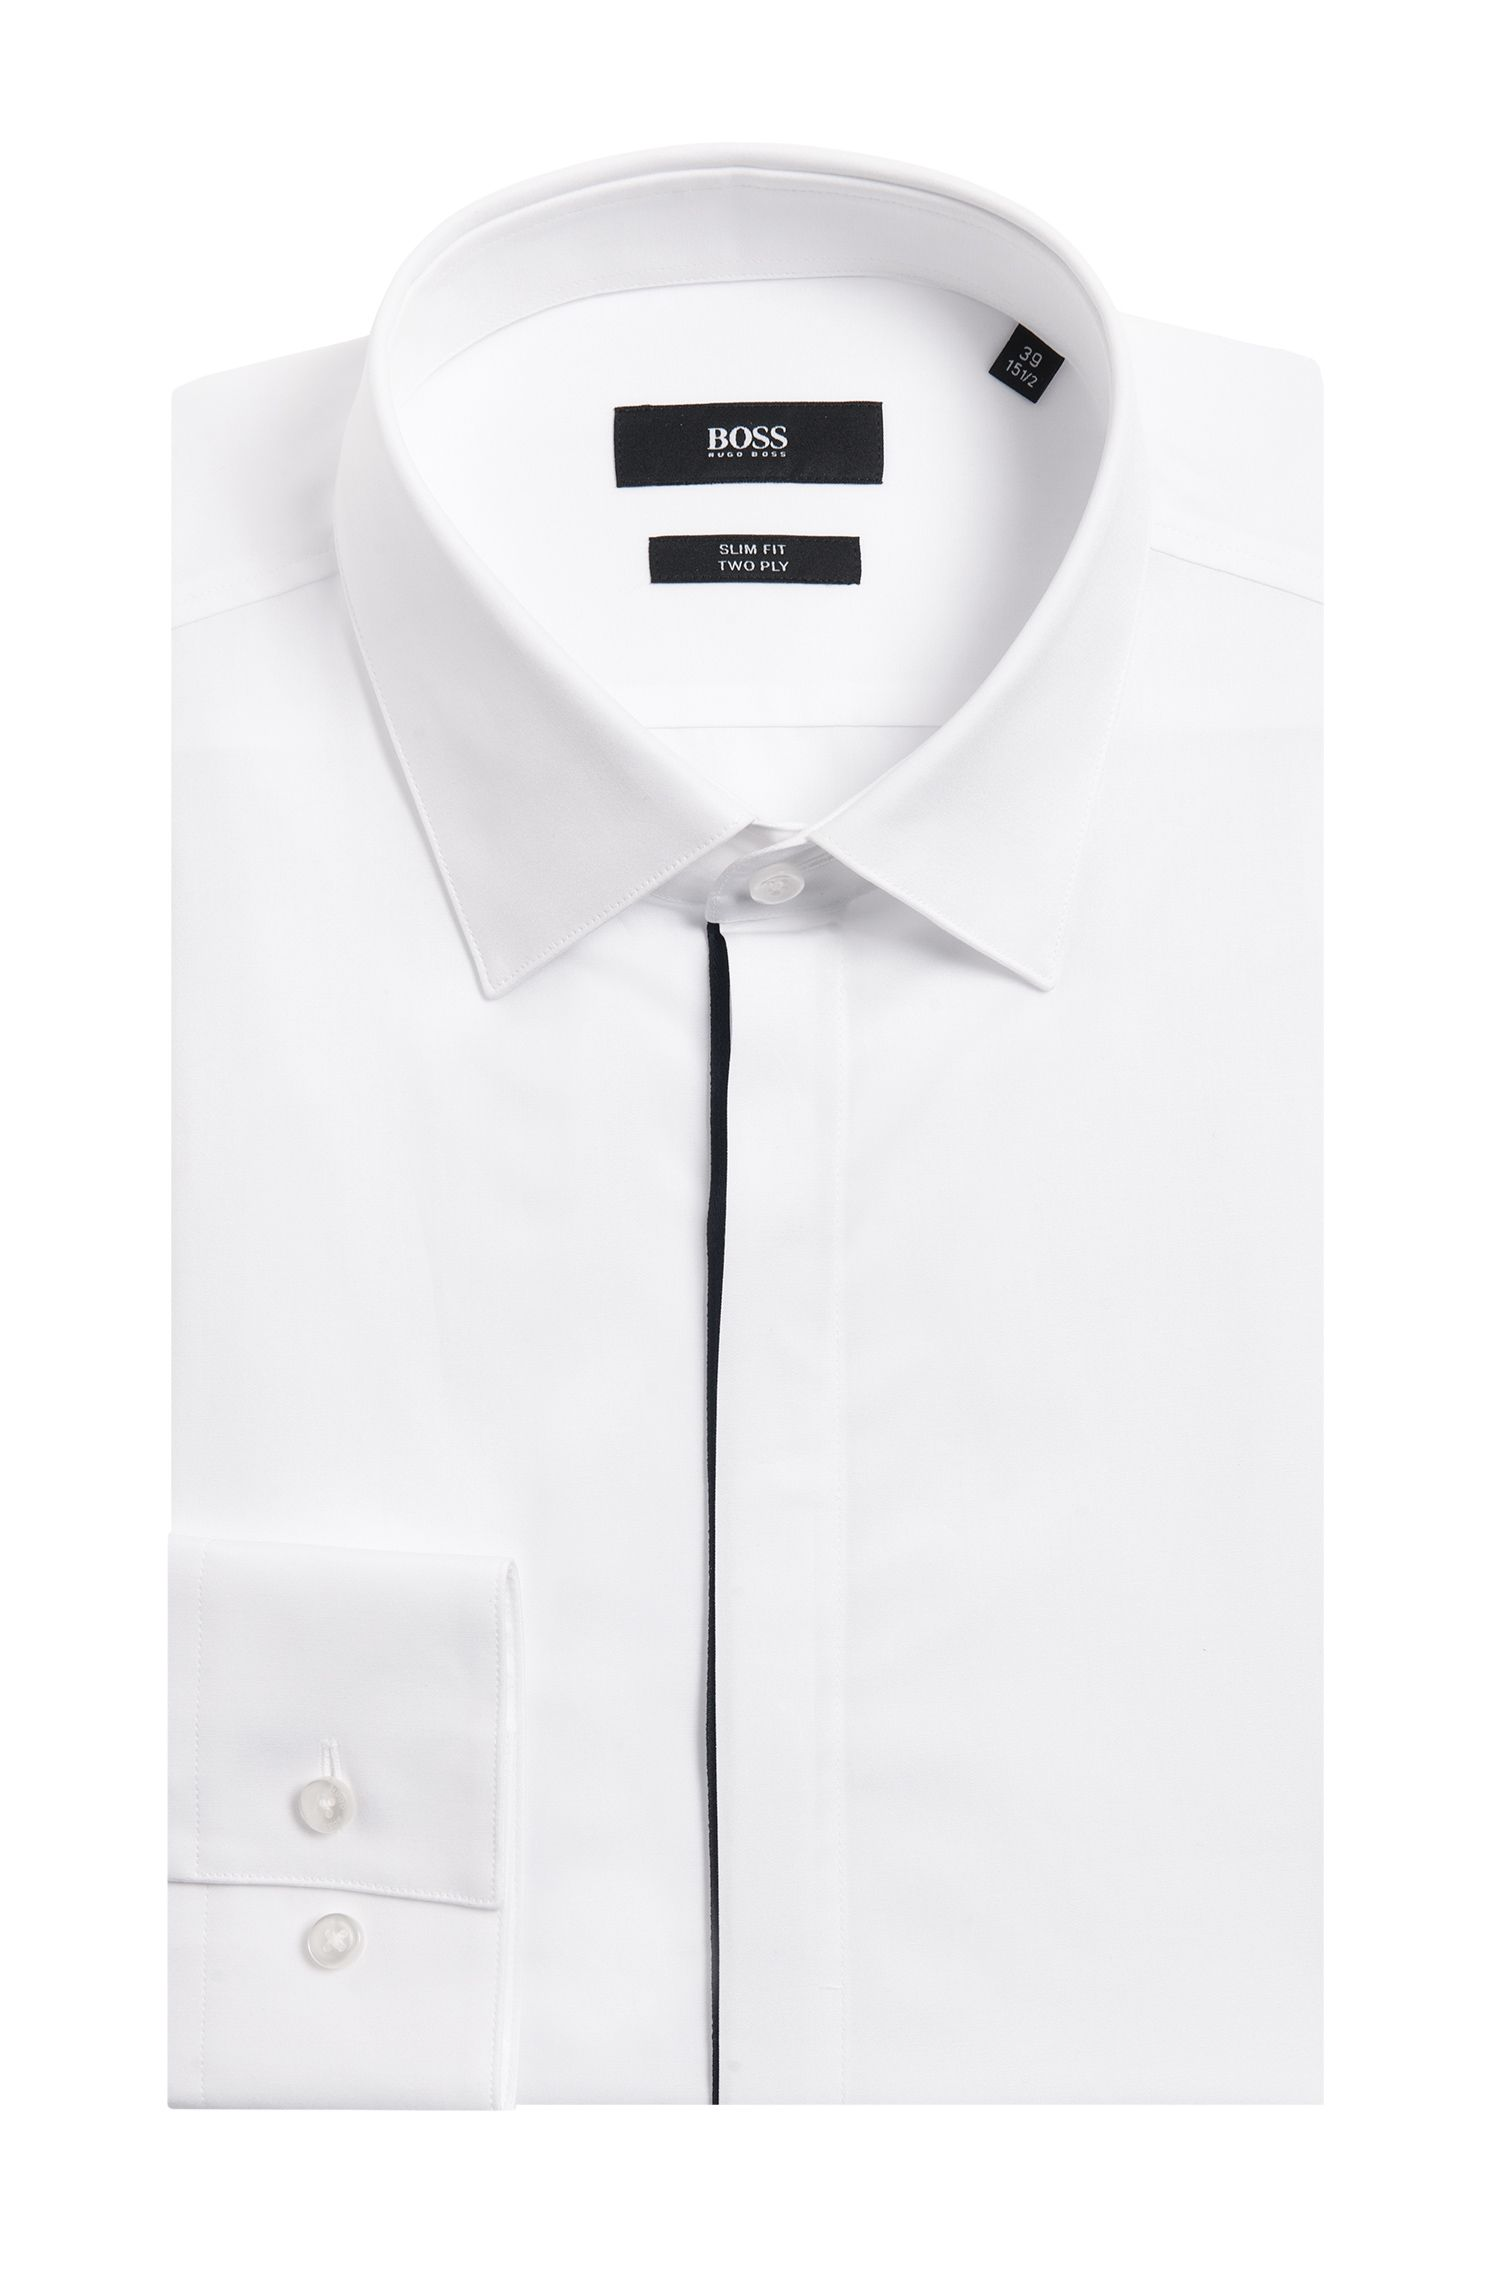 'Jamis' | Slim Fit, 2-Ply Italian Cotton Dress Shirt